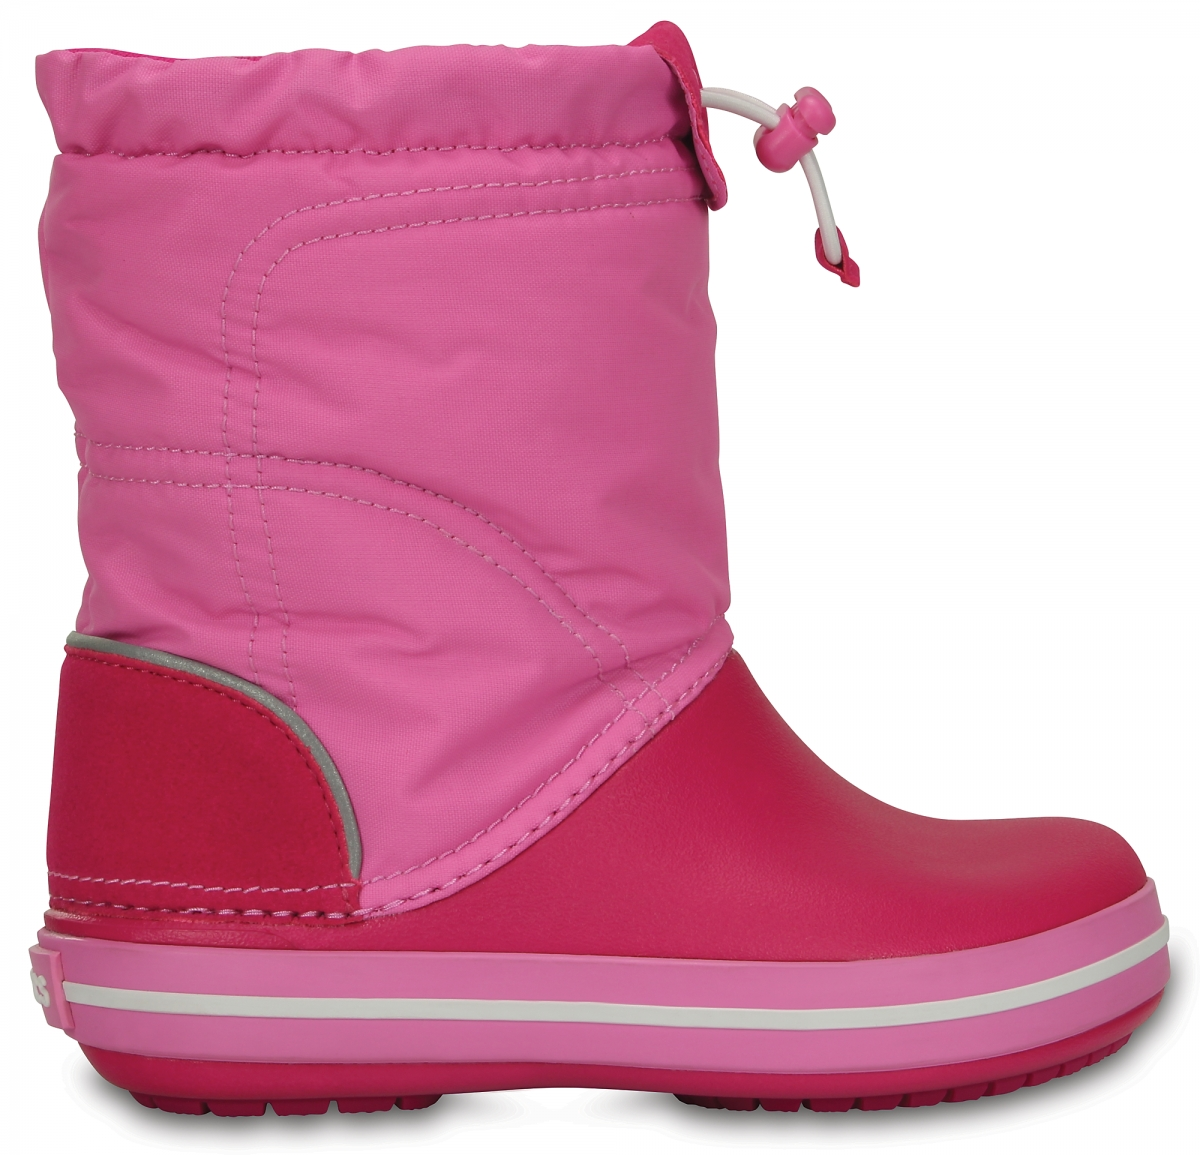 Crocs Crocband LodgePoint Boot Kids - Candy Pink/Party Pink, C8 (24-25)